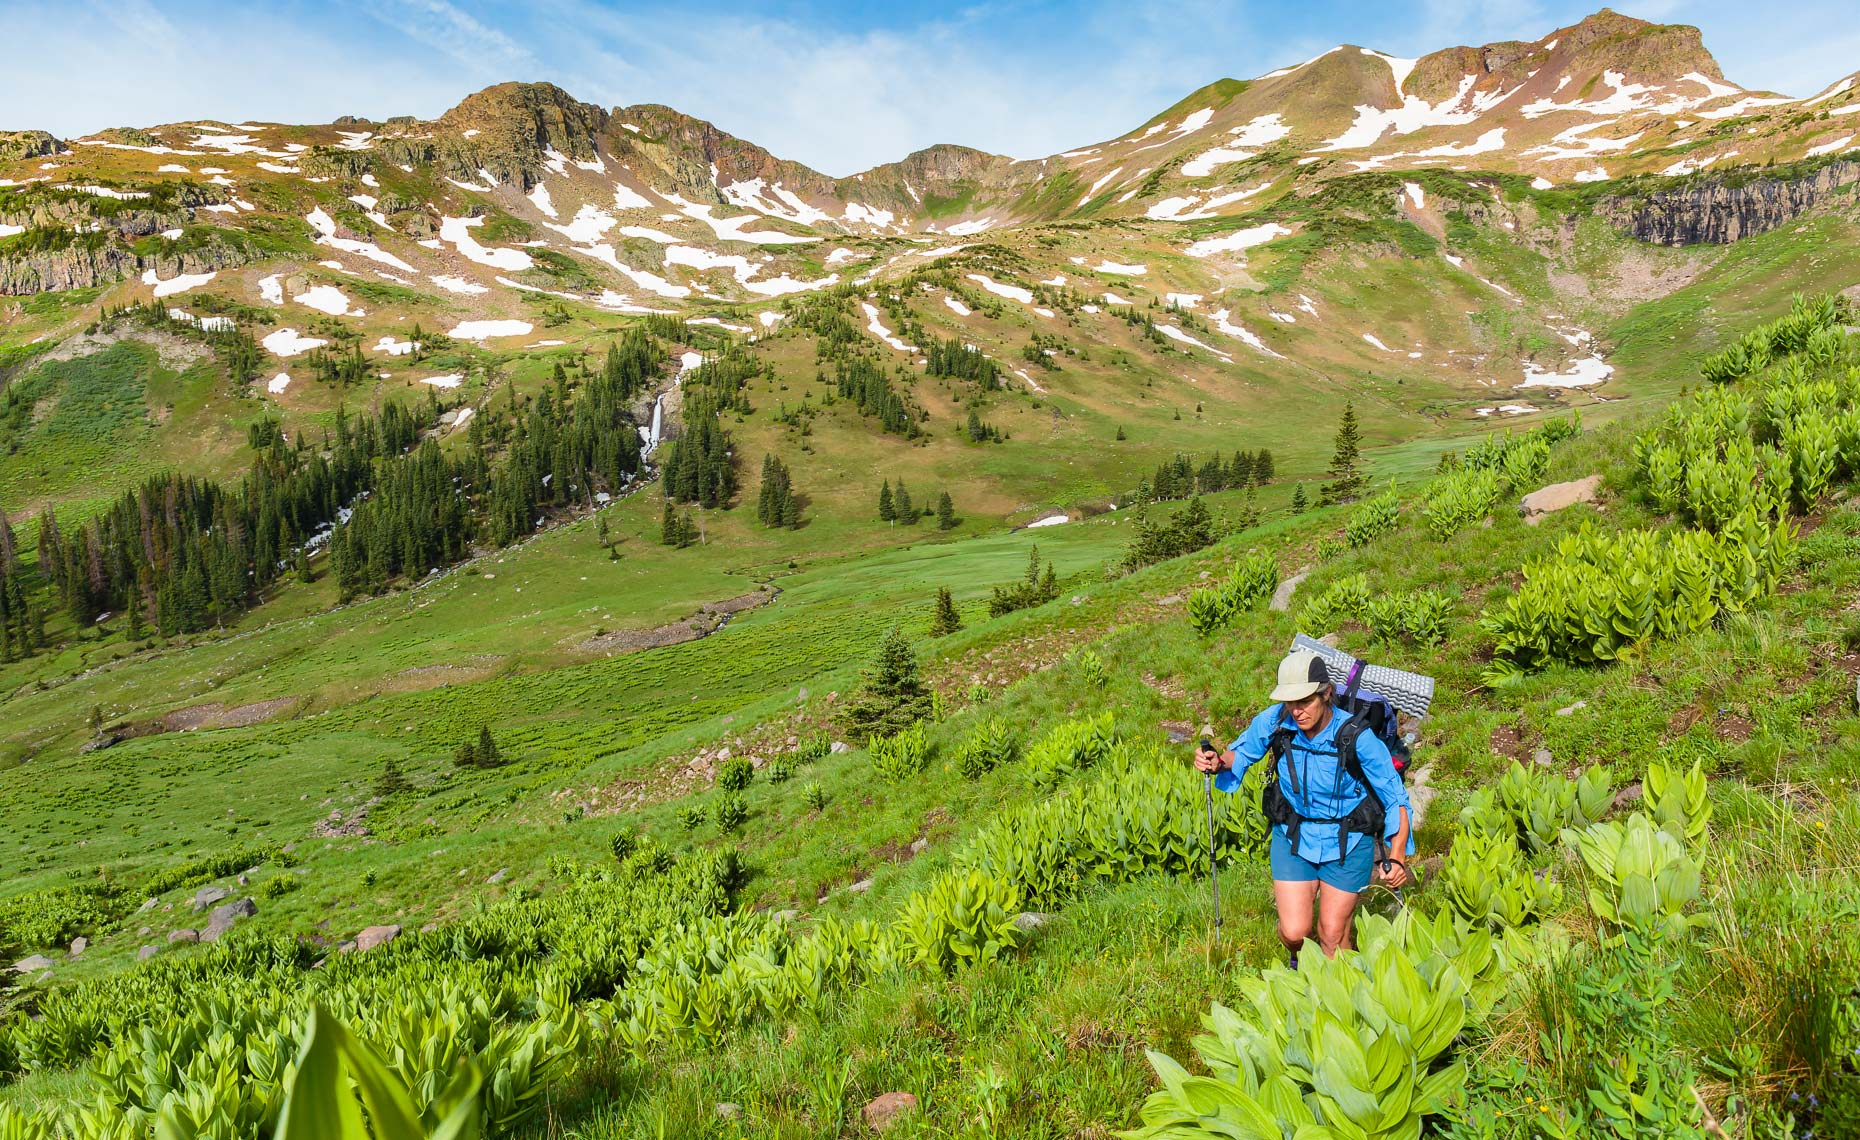 Hiking-Continental-Divide-Trail-Michael-DeYoung-MD150707VCO_HB100